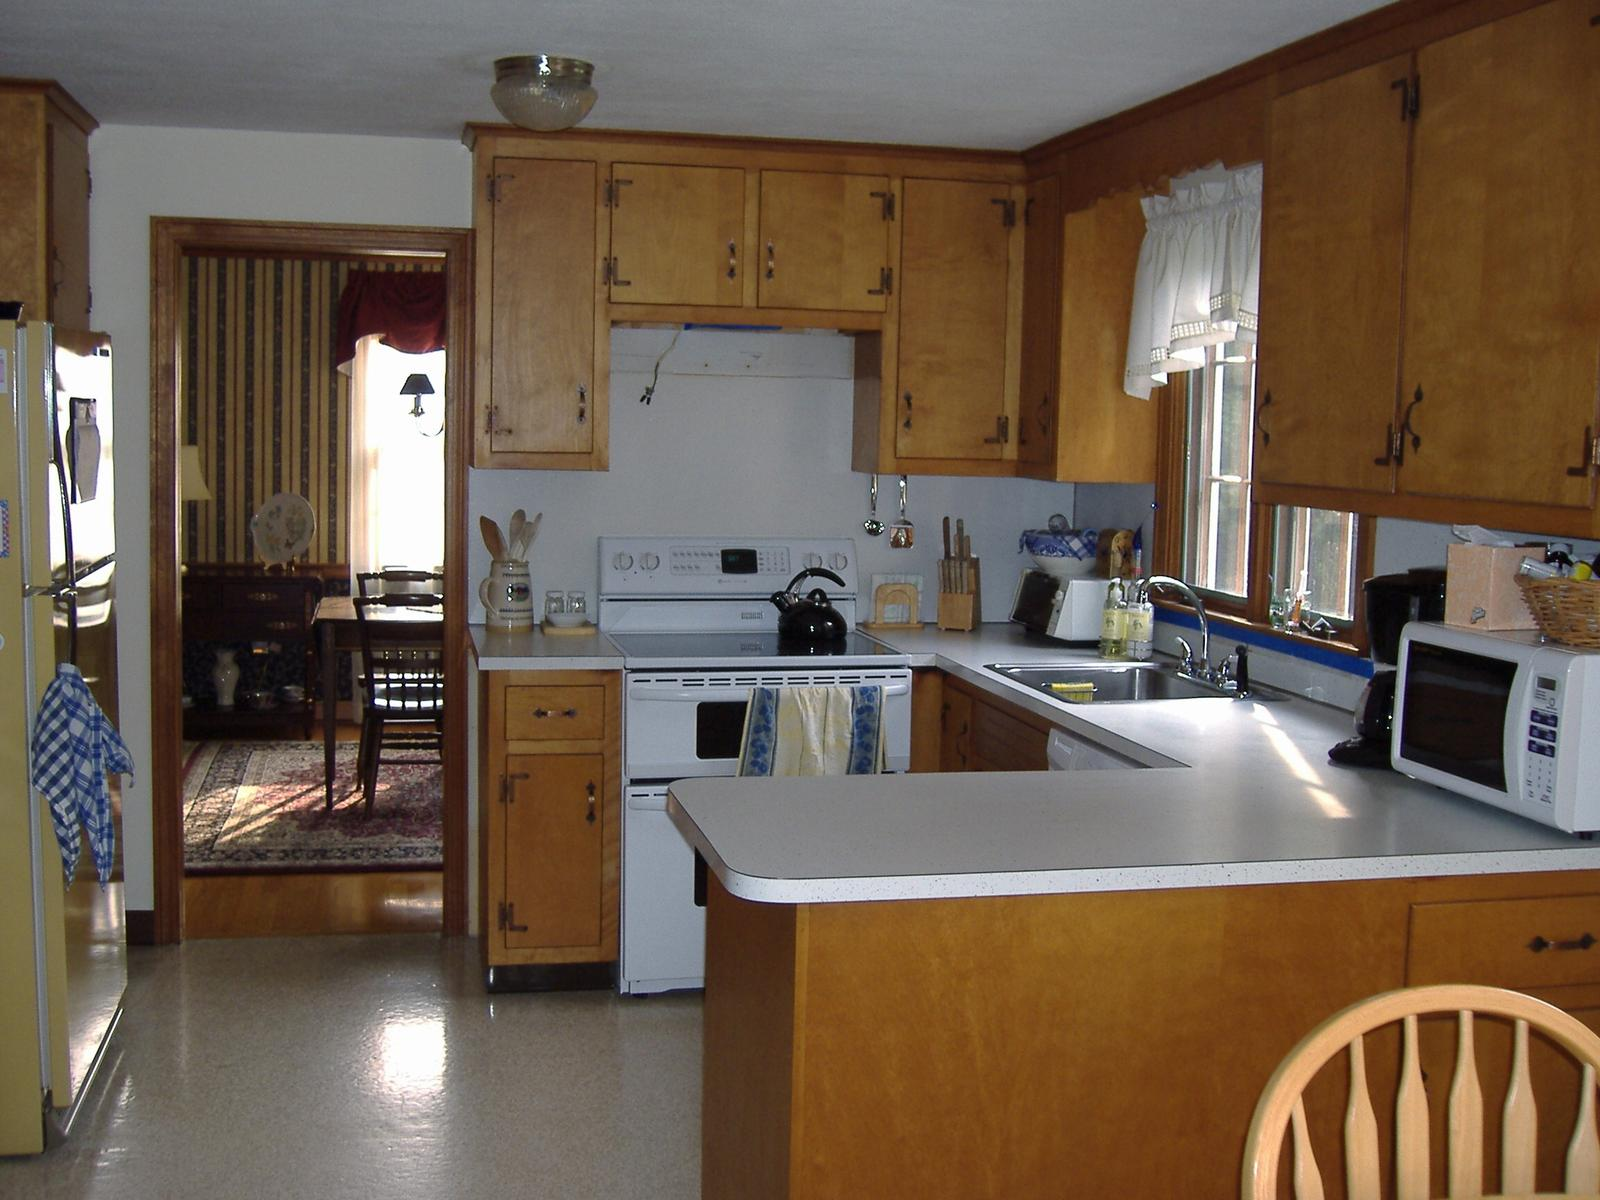 renovation ideas for small kitchens photo - 2